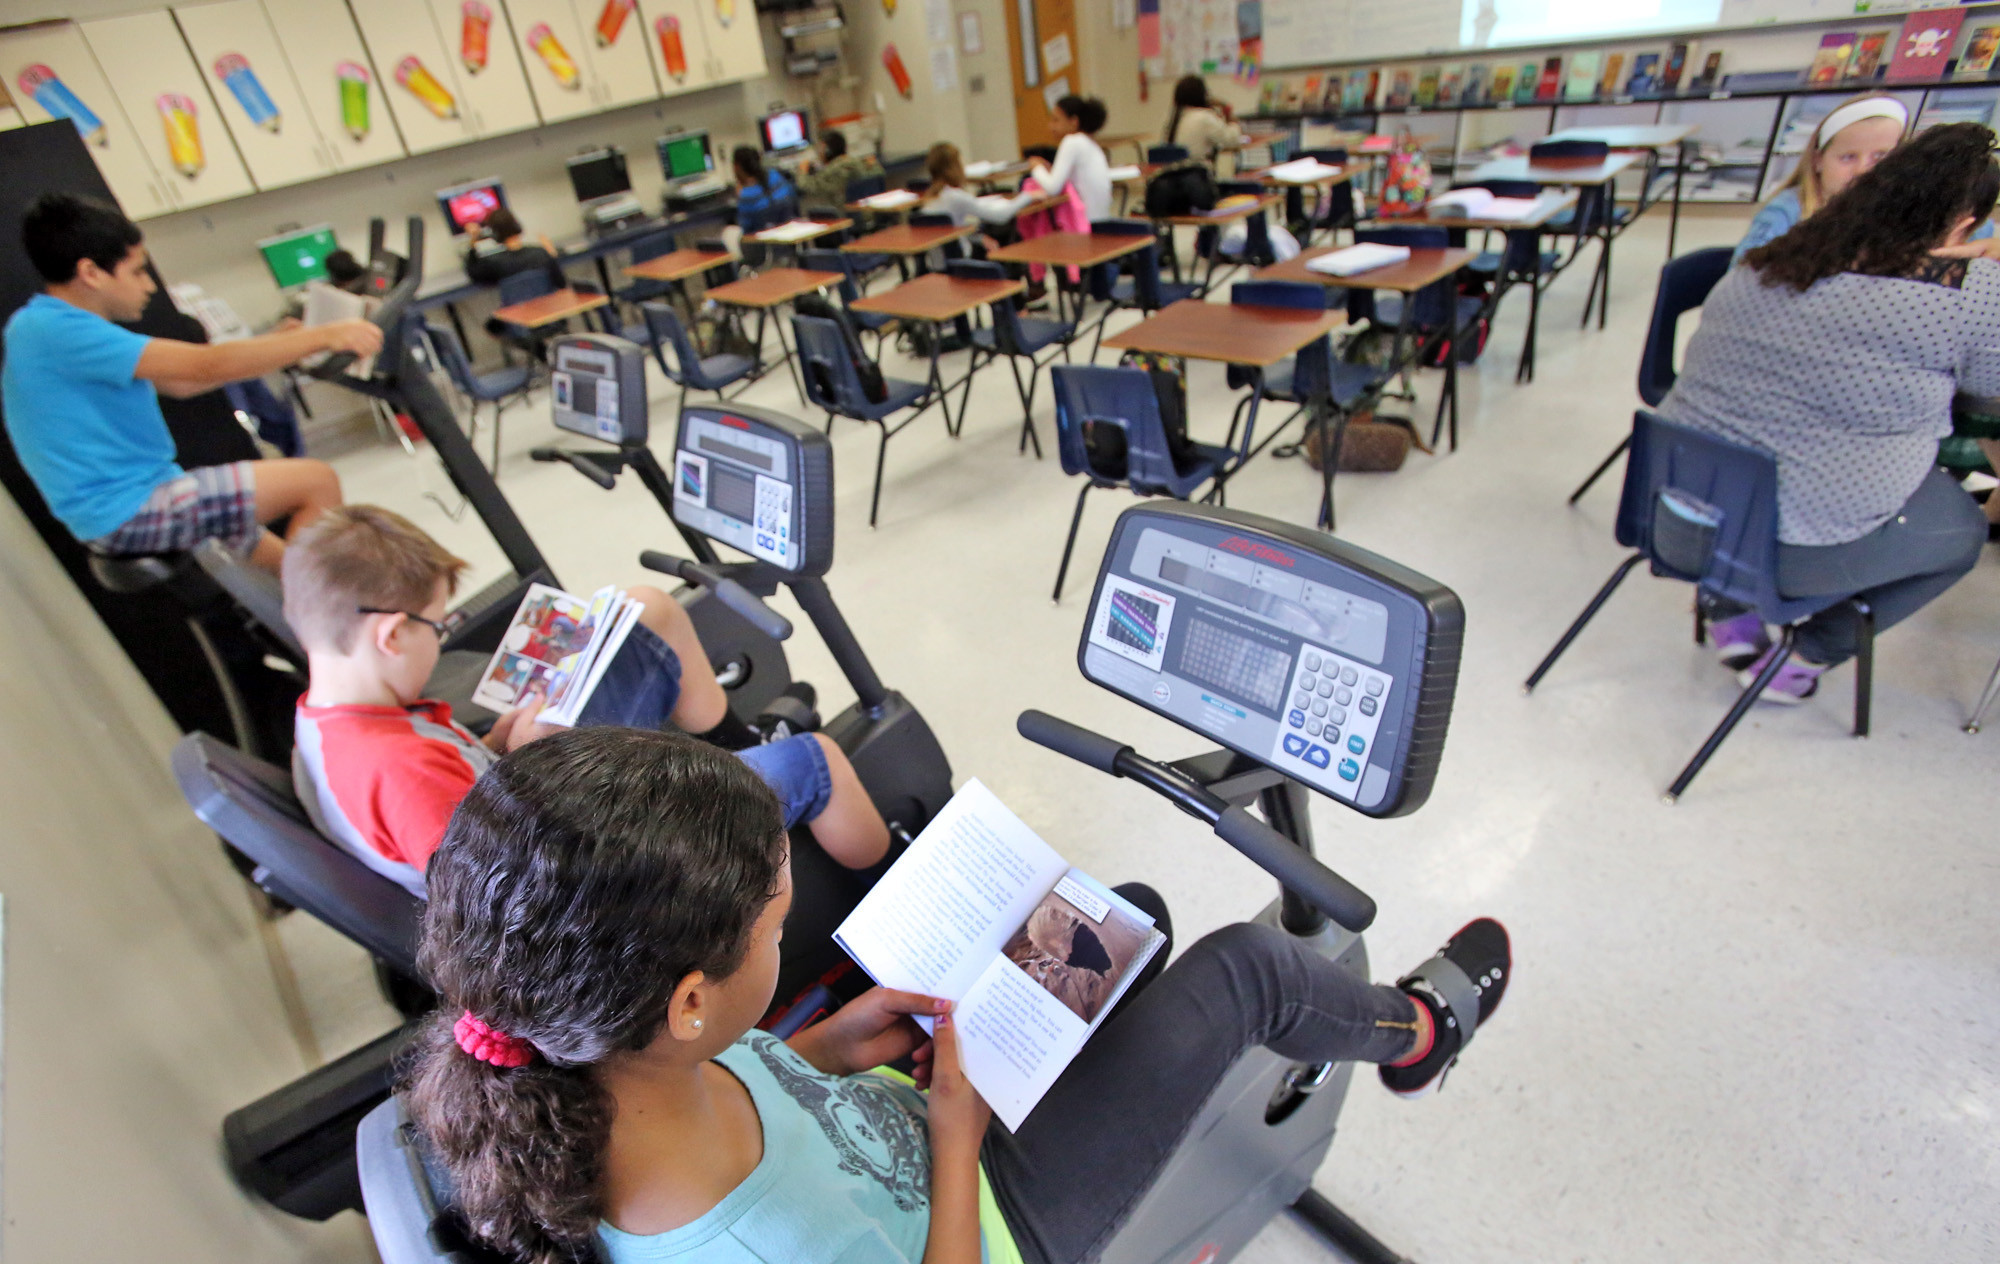 Exercise bikes in classroom help turn riders into readers